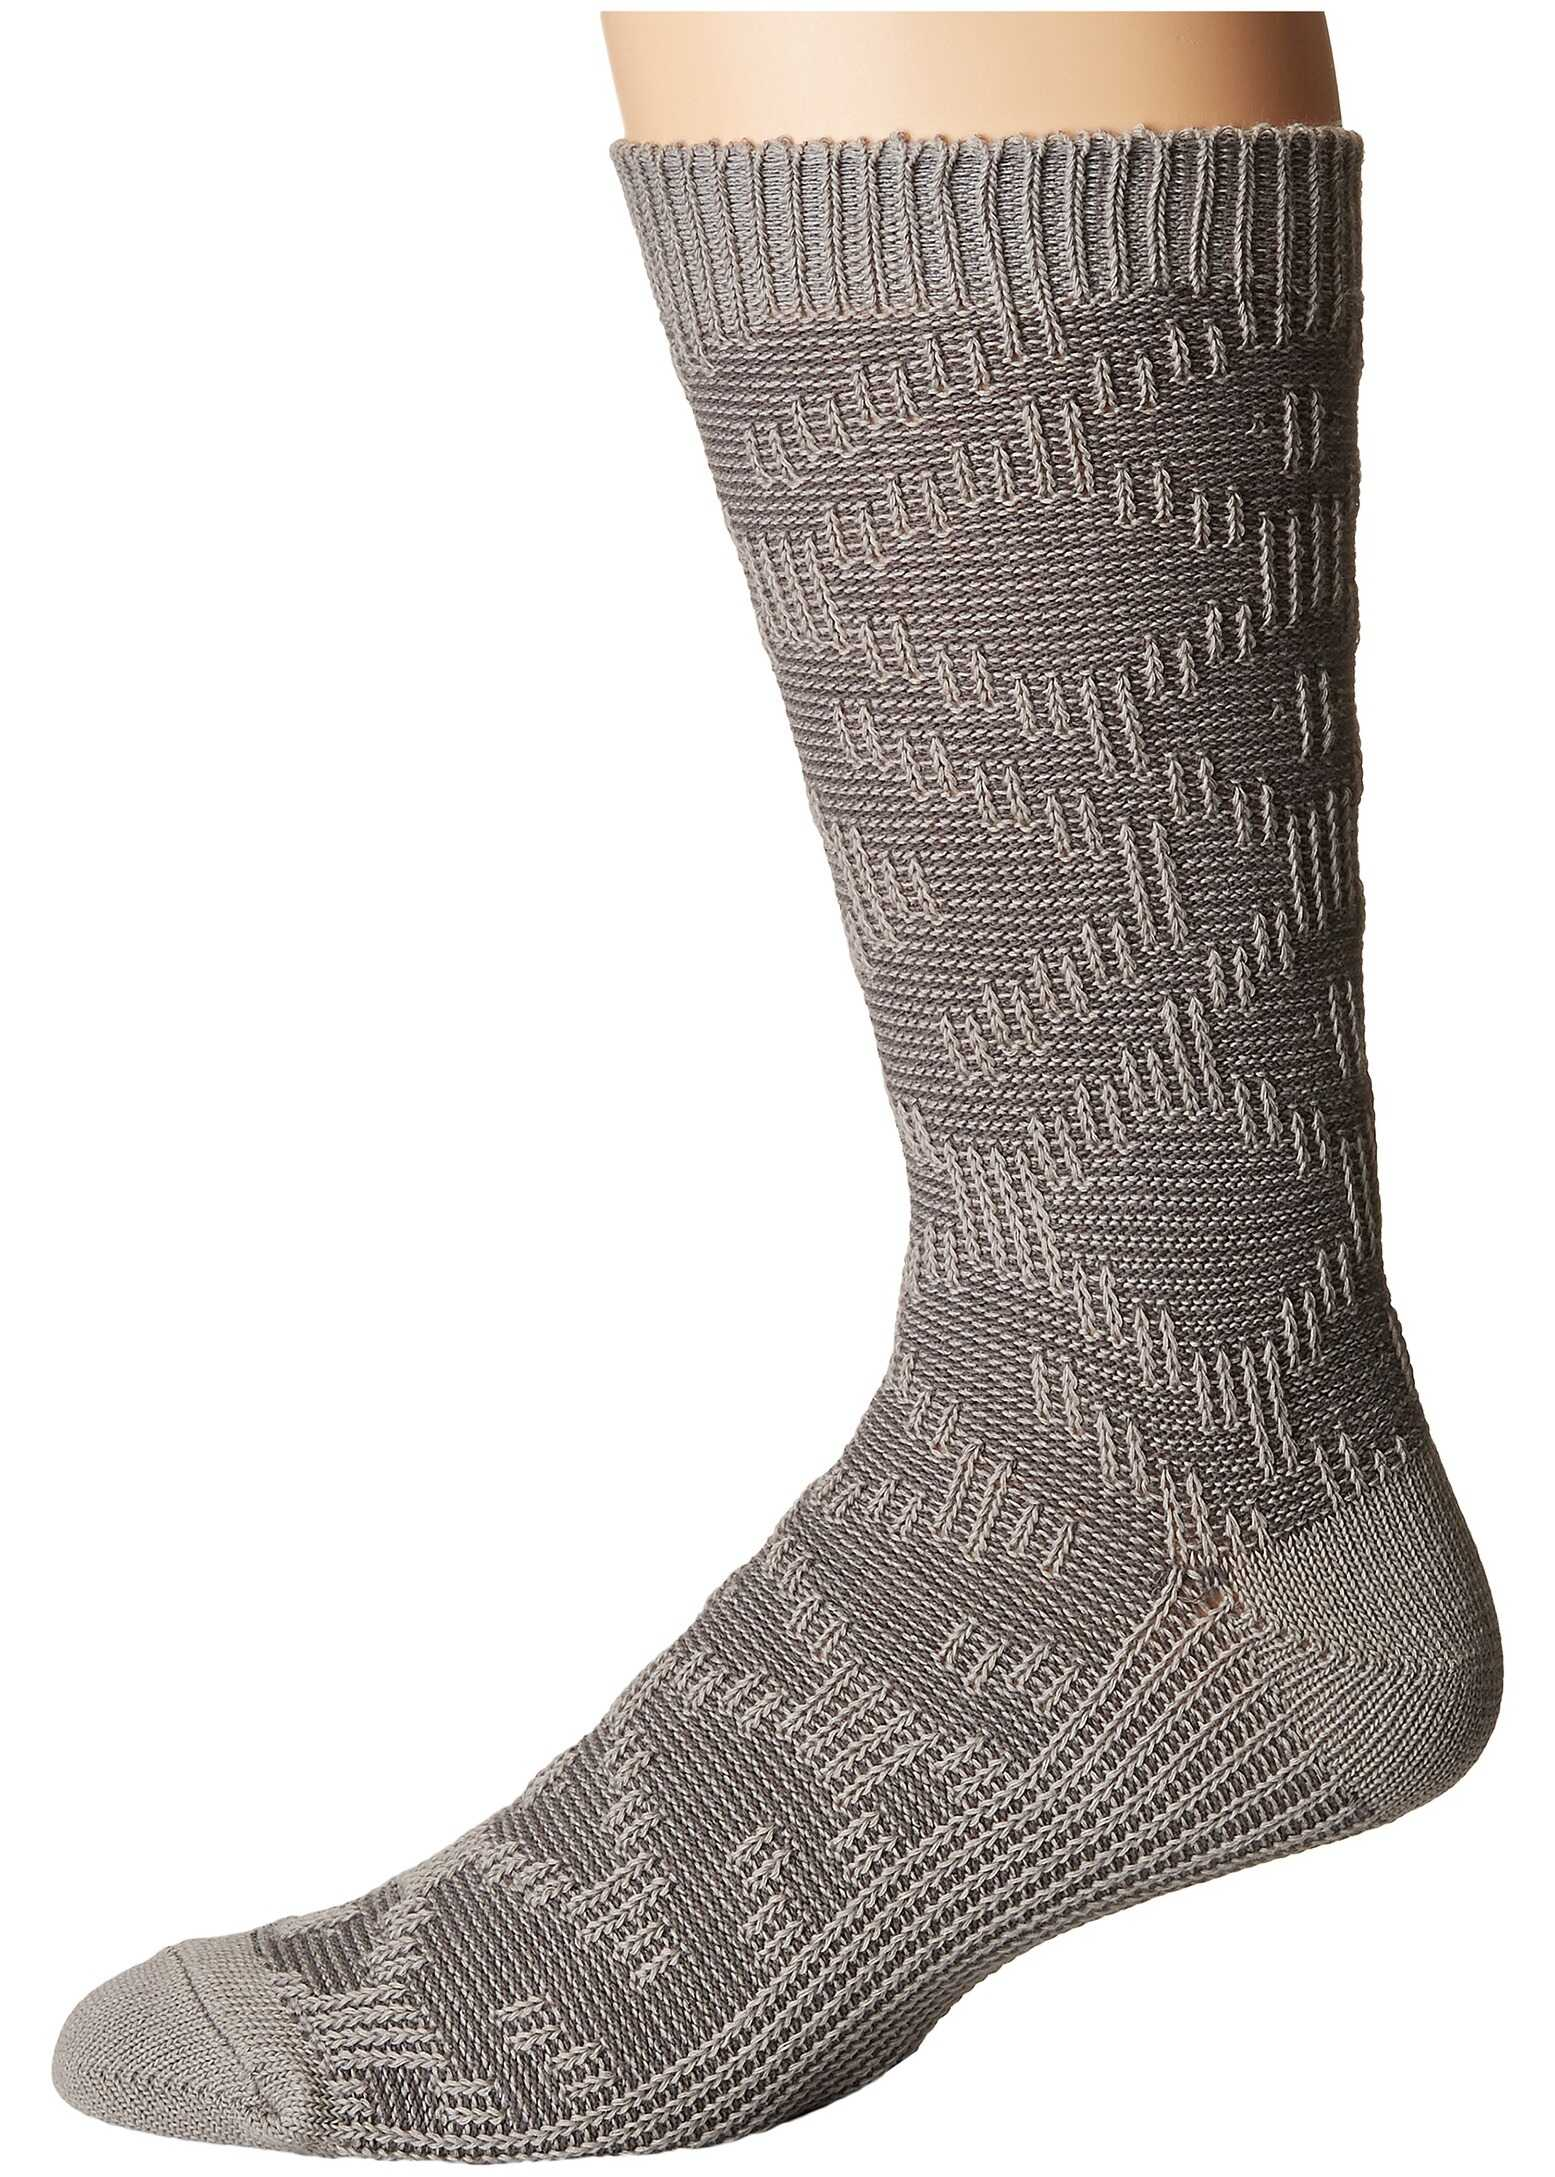 UGG Cotton Textured Crew Socks Seal